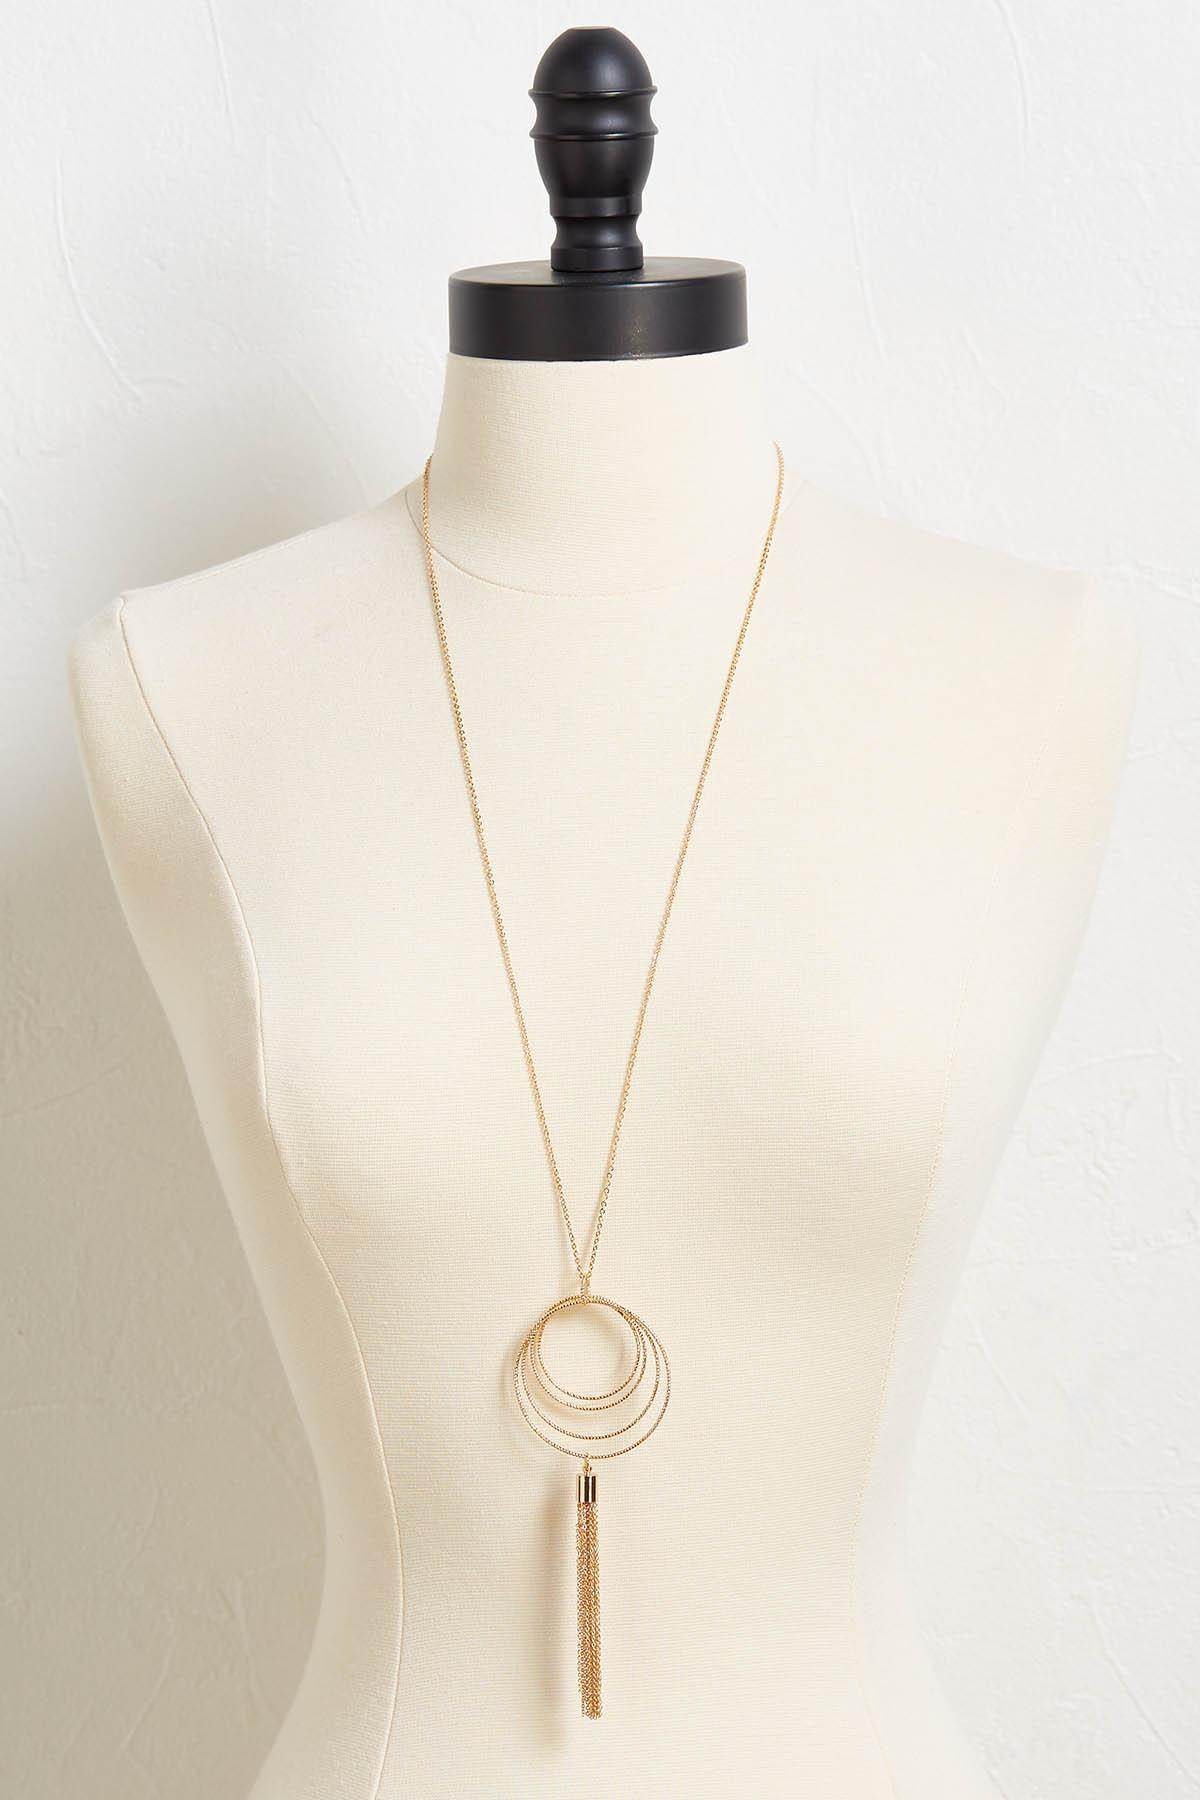 Metal Tasseled Circle Necklace